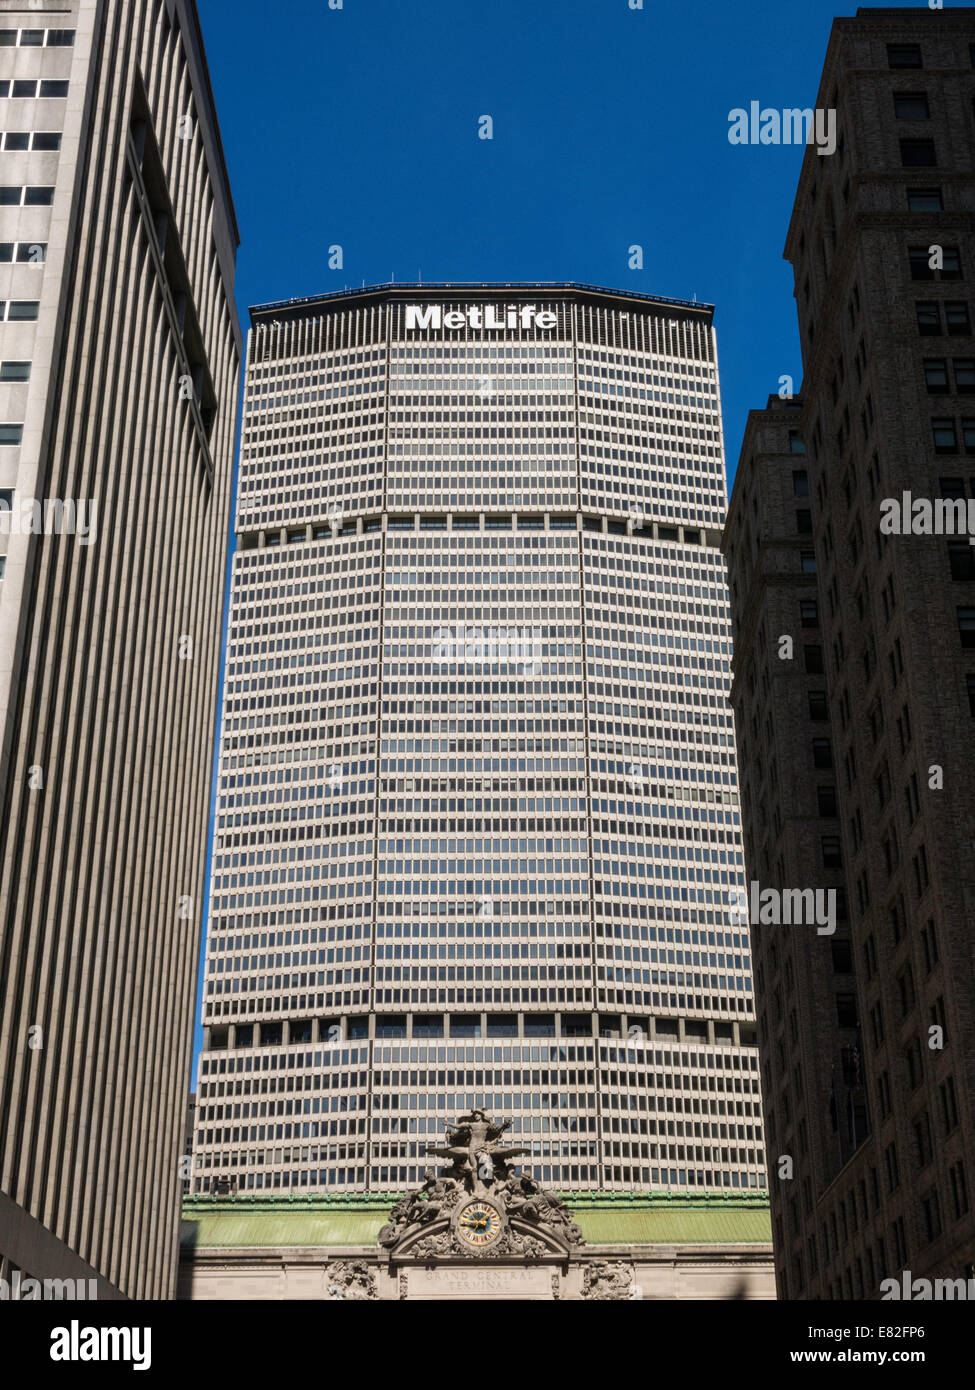 Met Life Building Facade Behind Grand Central Station, 200 Park Avenue, NYC - Stock Image